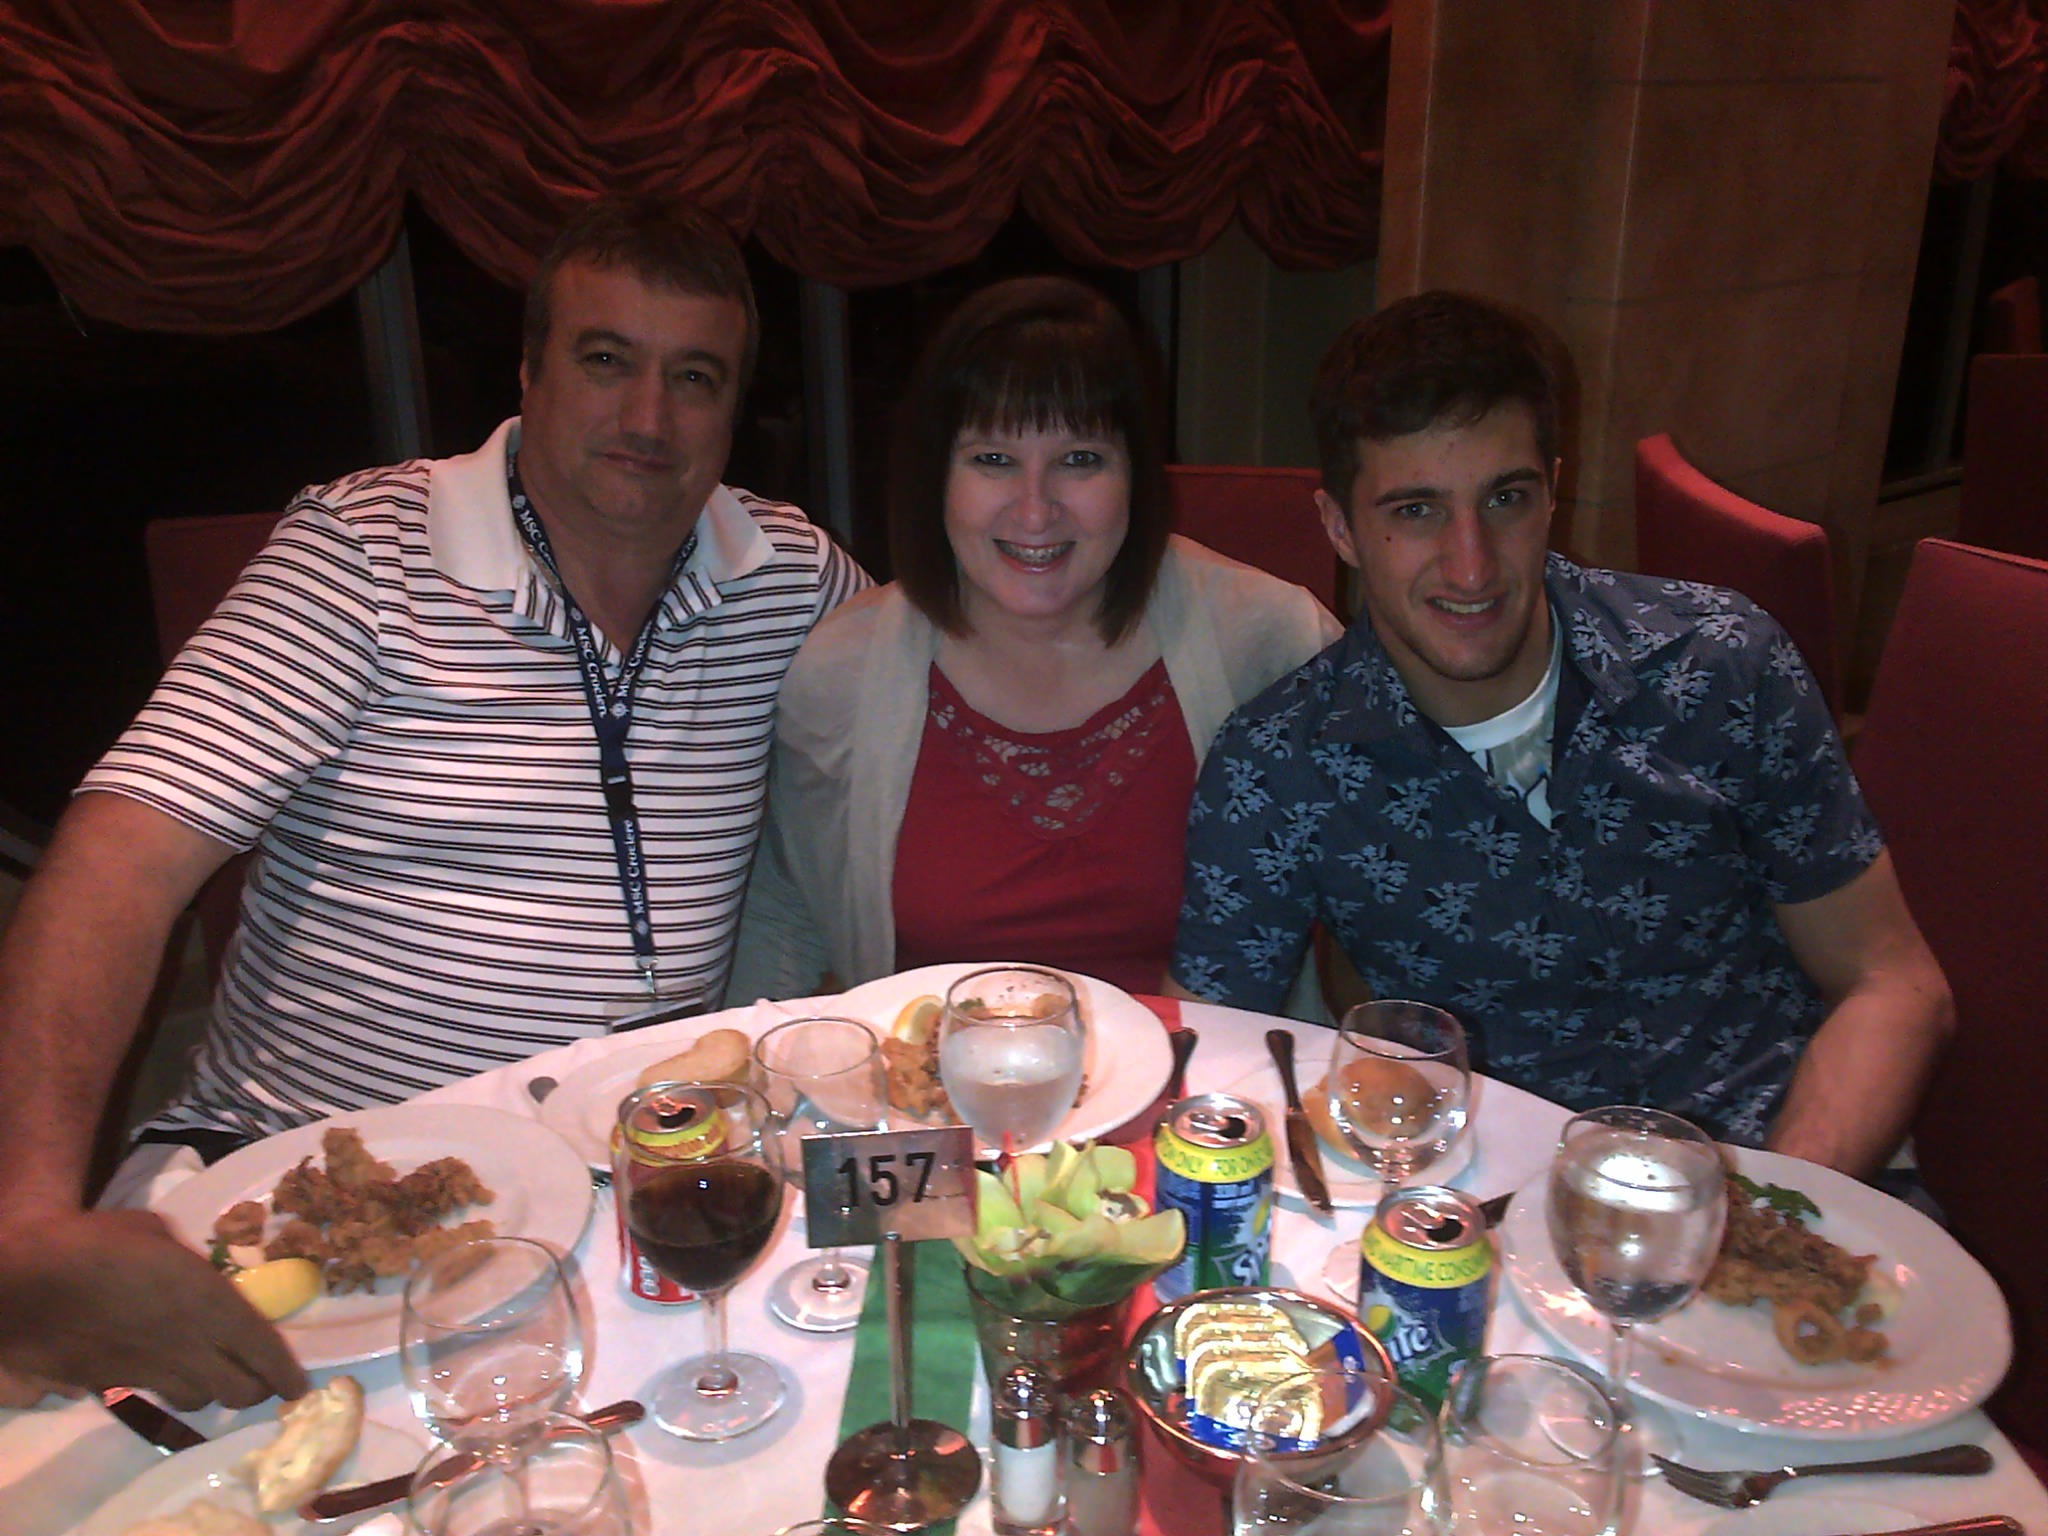 The Paverd family having supper in the Il Covo.